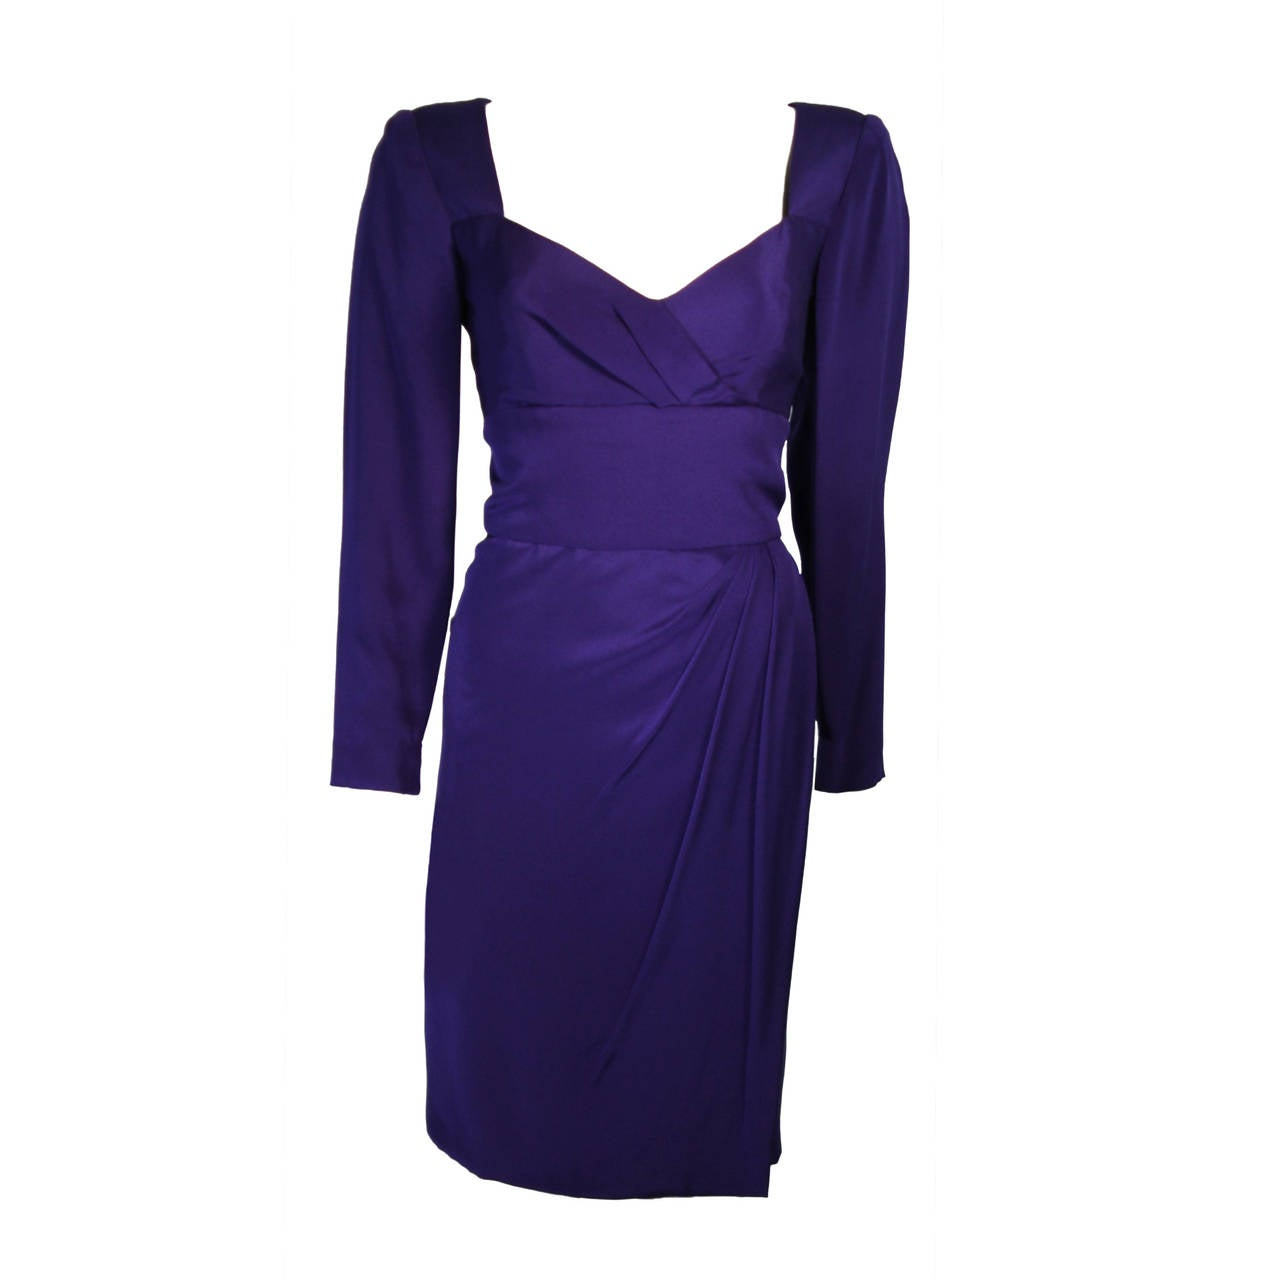 Travilla Purple Silk Long Sleeve Cocktail Dress with Draping Size 8 For Sale